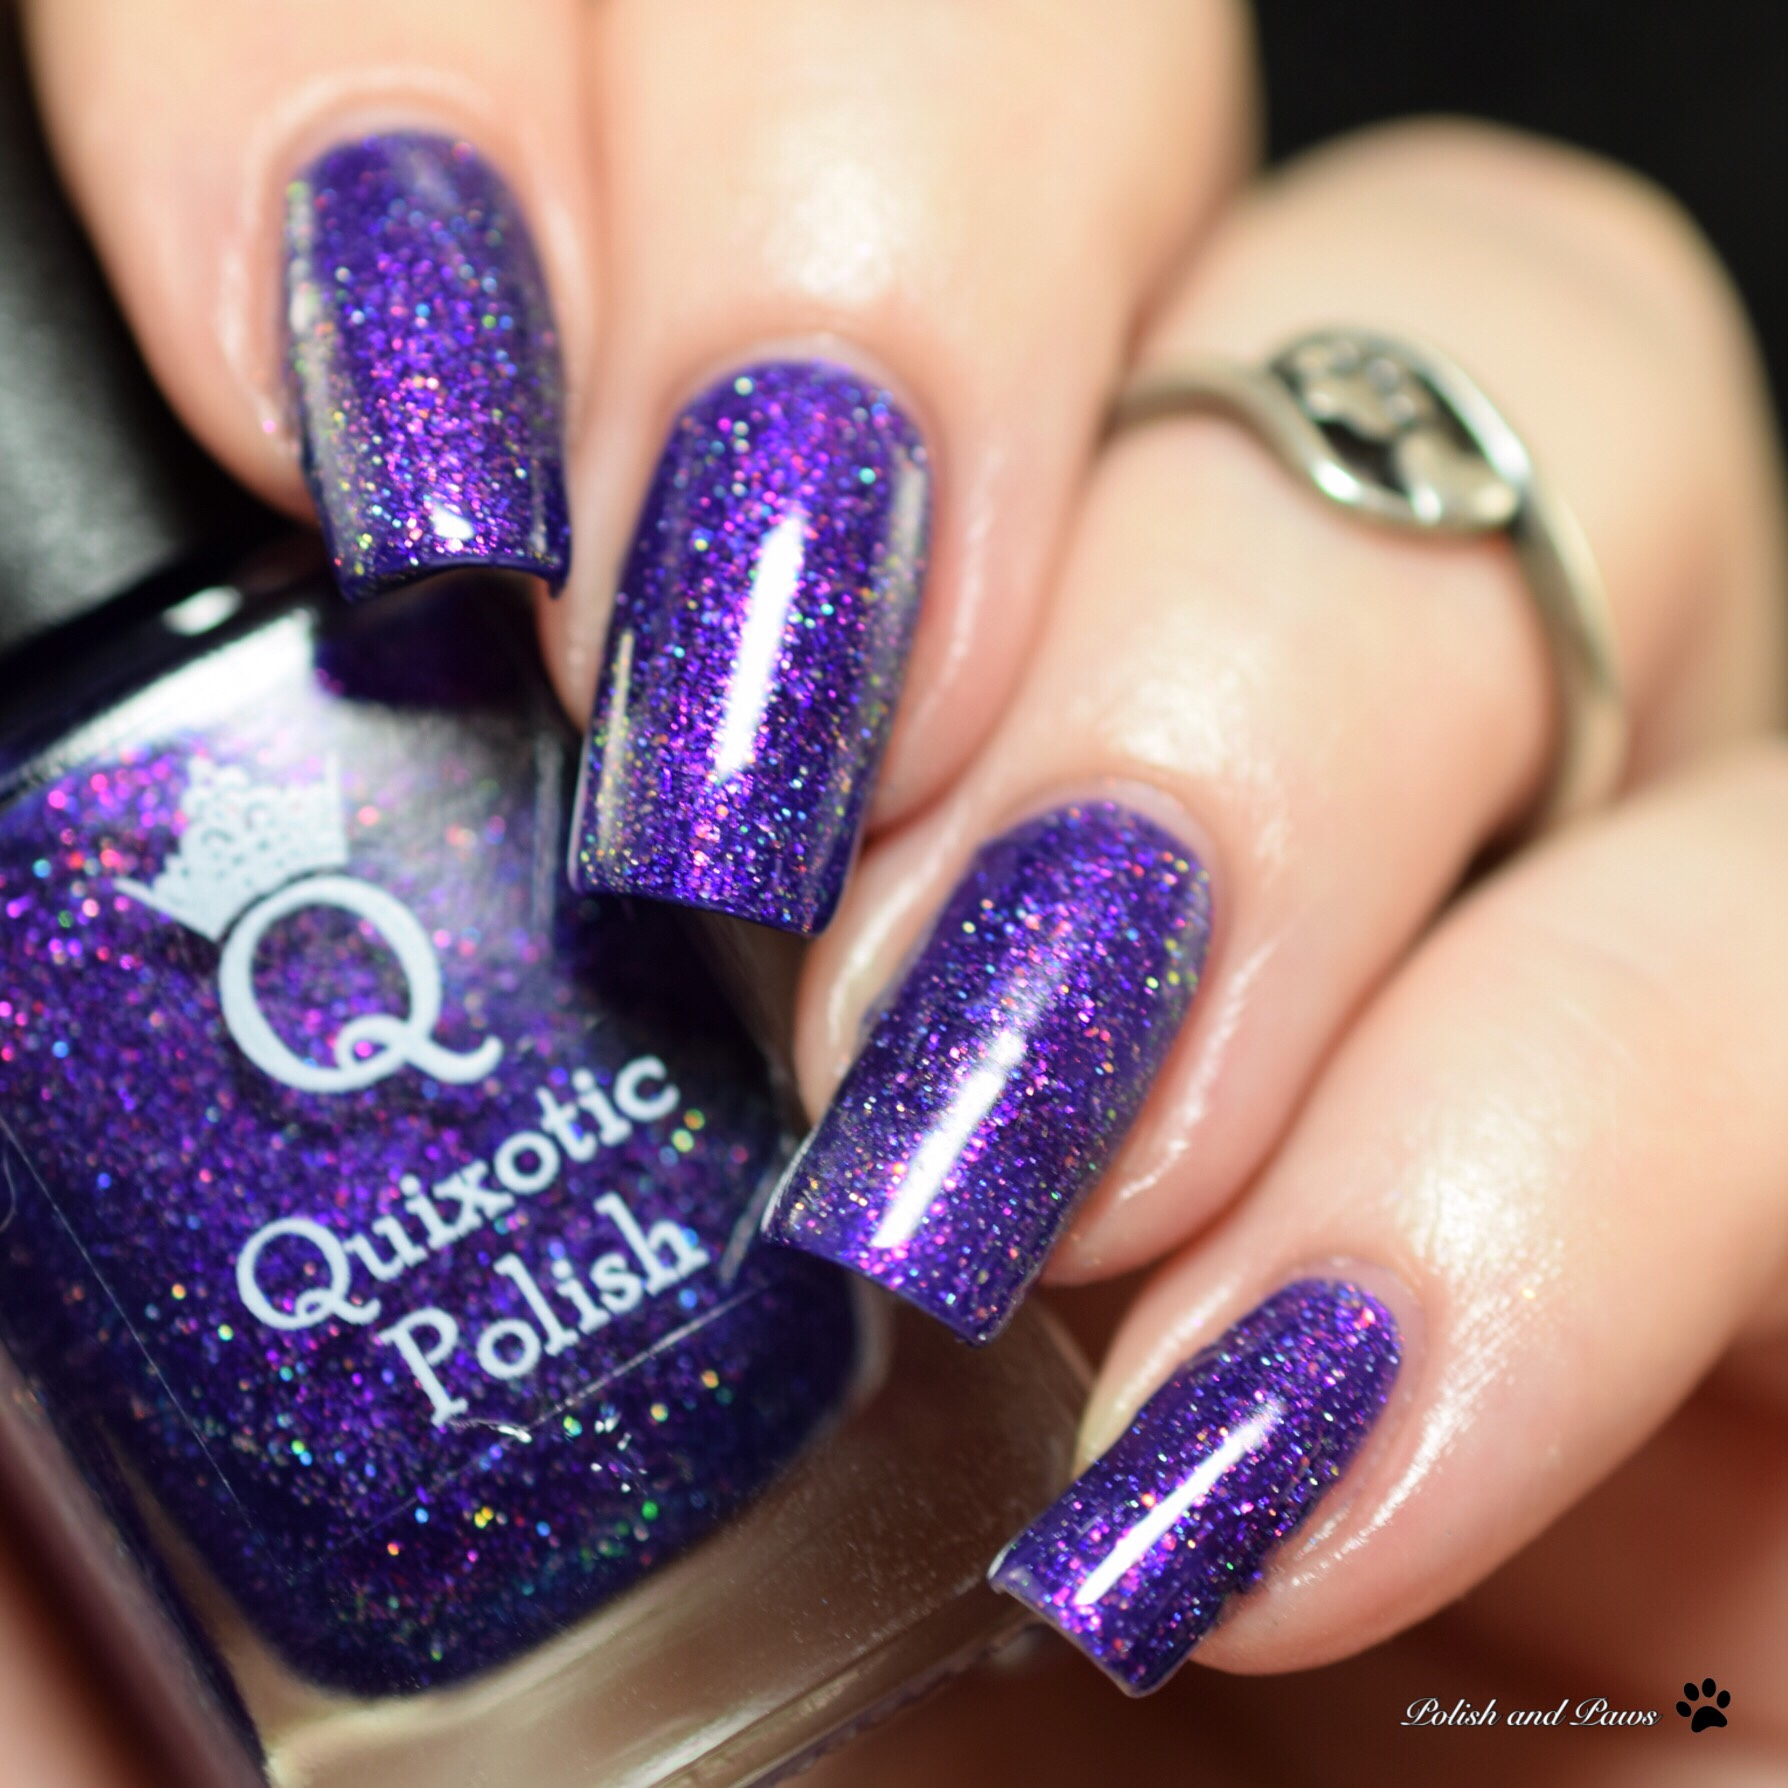 Quixotic Polish Laguna